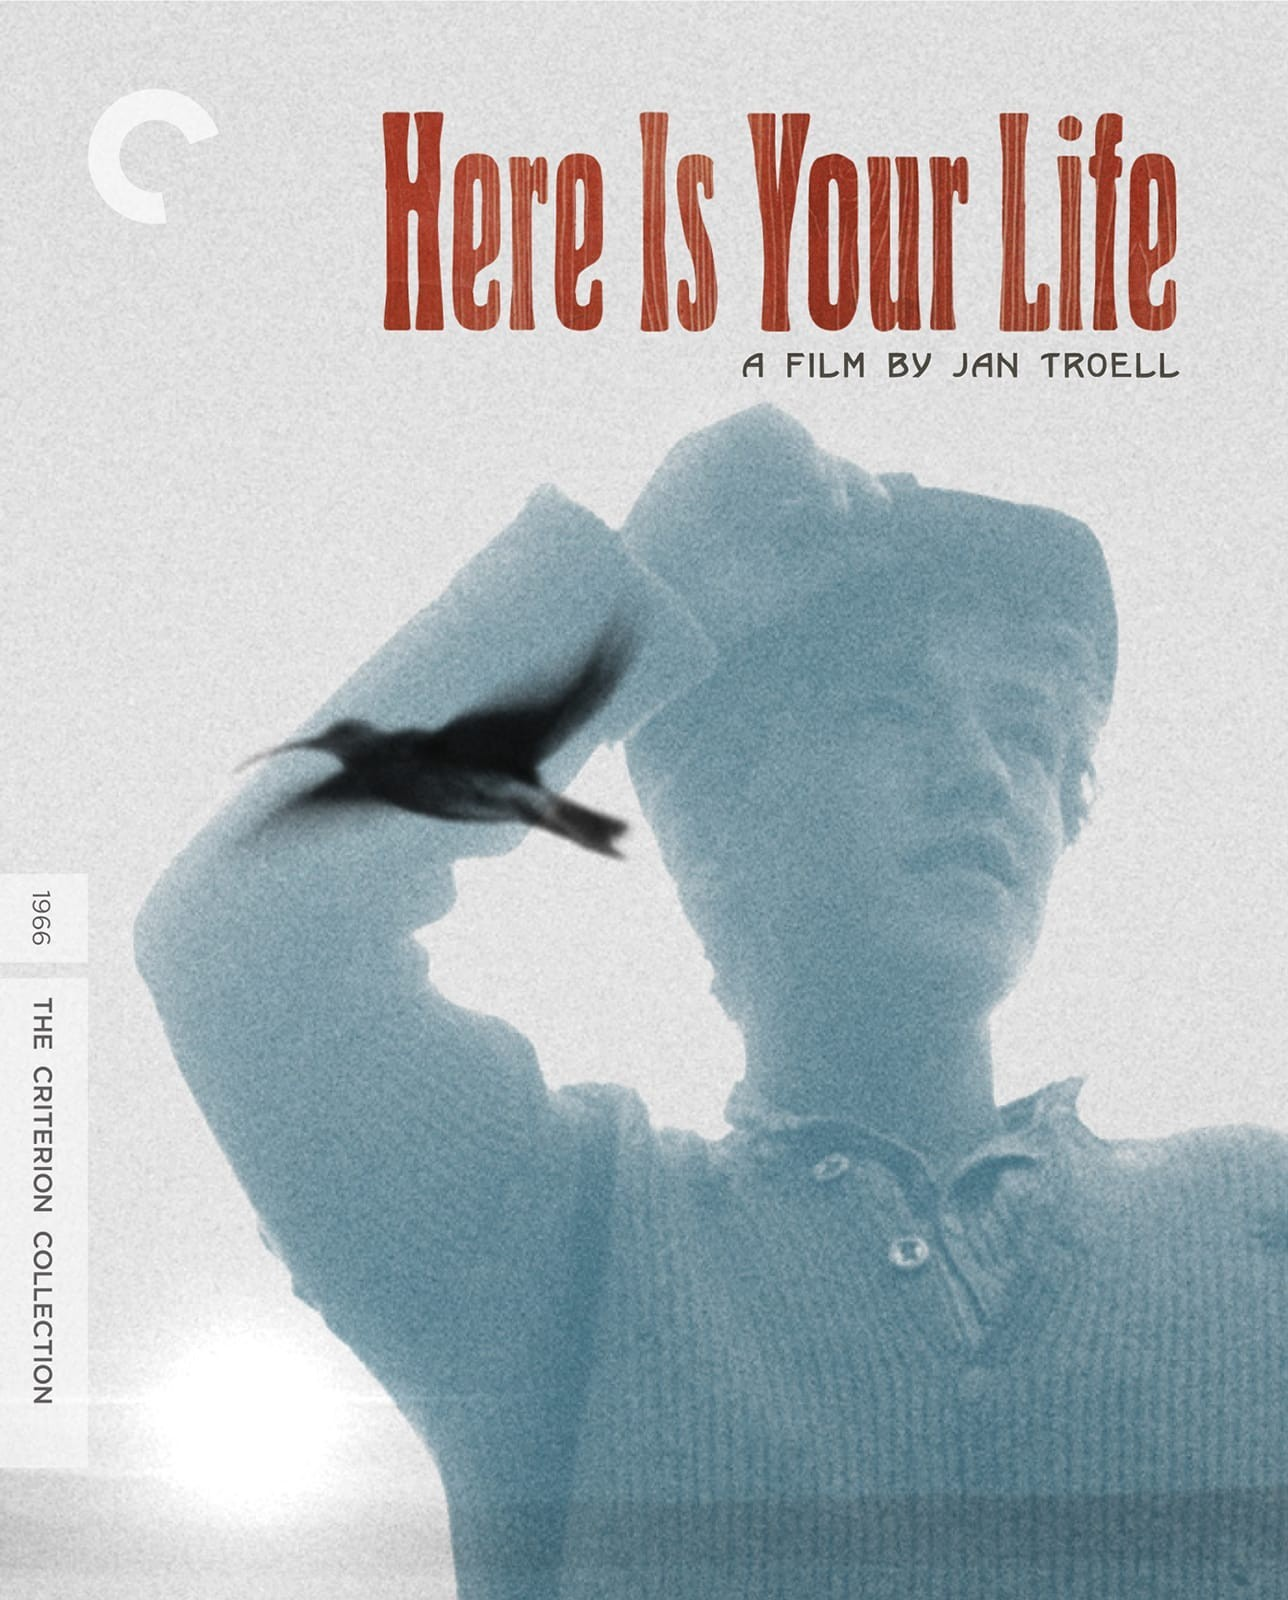 Heres Your Life / Här har du ditt liv (1966) [The Criterion Collection]